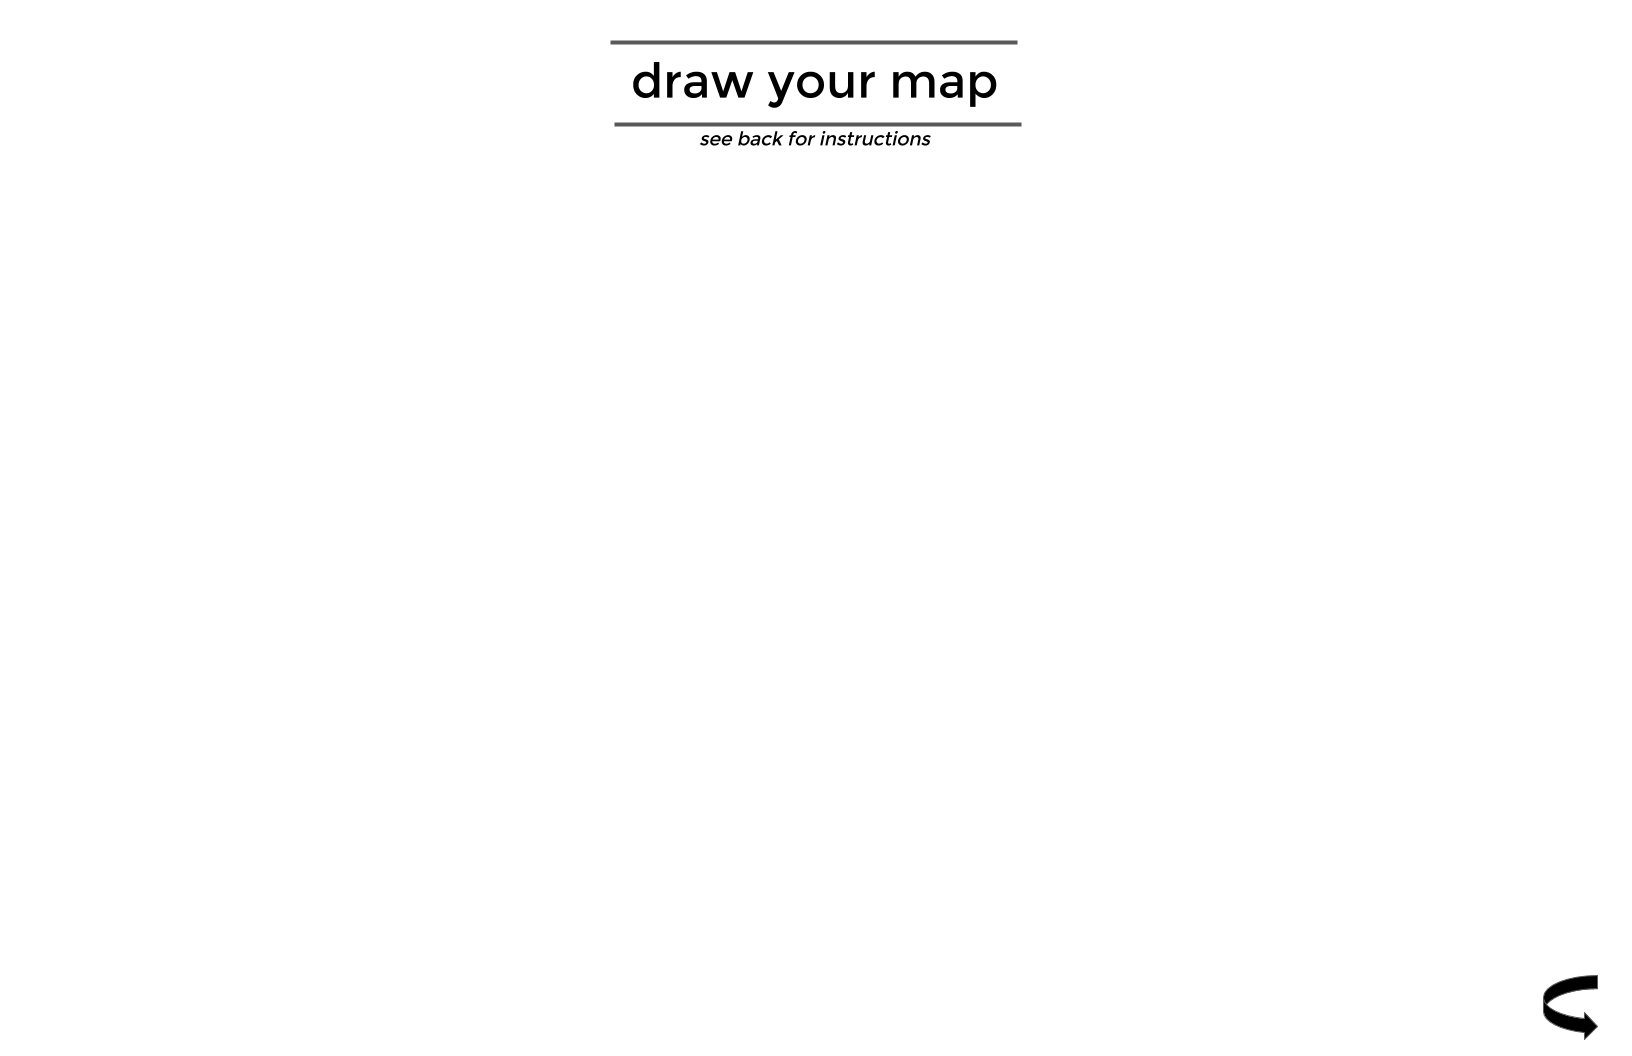 """Blank front of the cognitive mapping sheets with the directions to """"draw your map"""""""